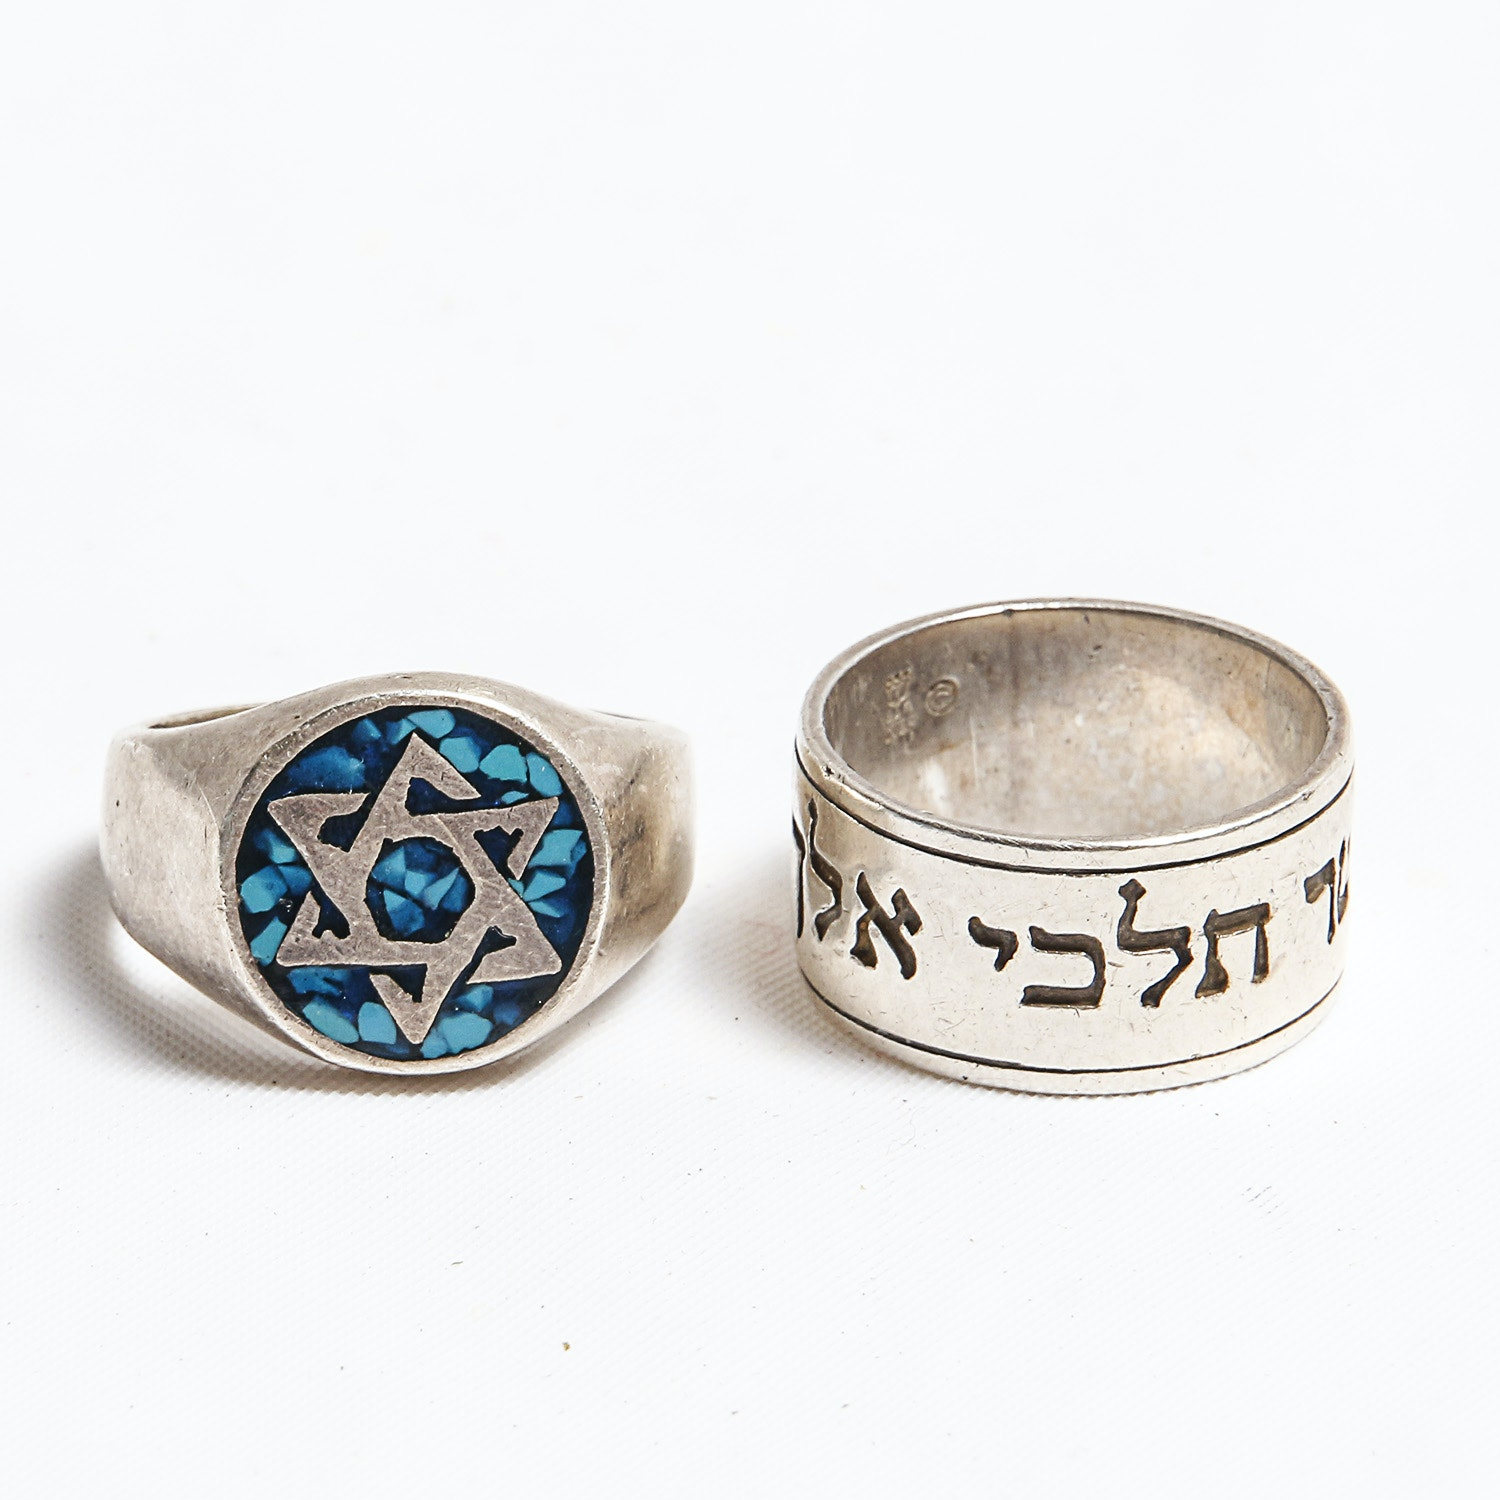 Pair of Judaica Sterling Silver Rings Including James Avery